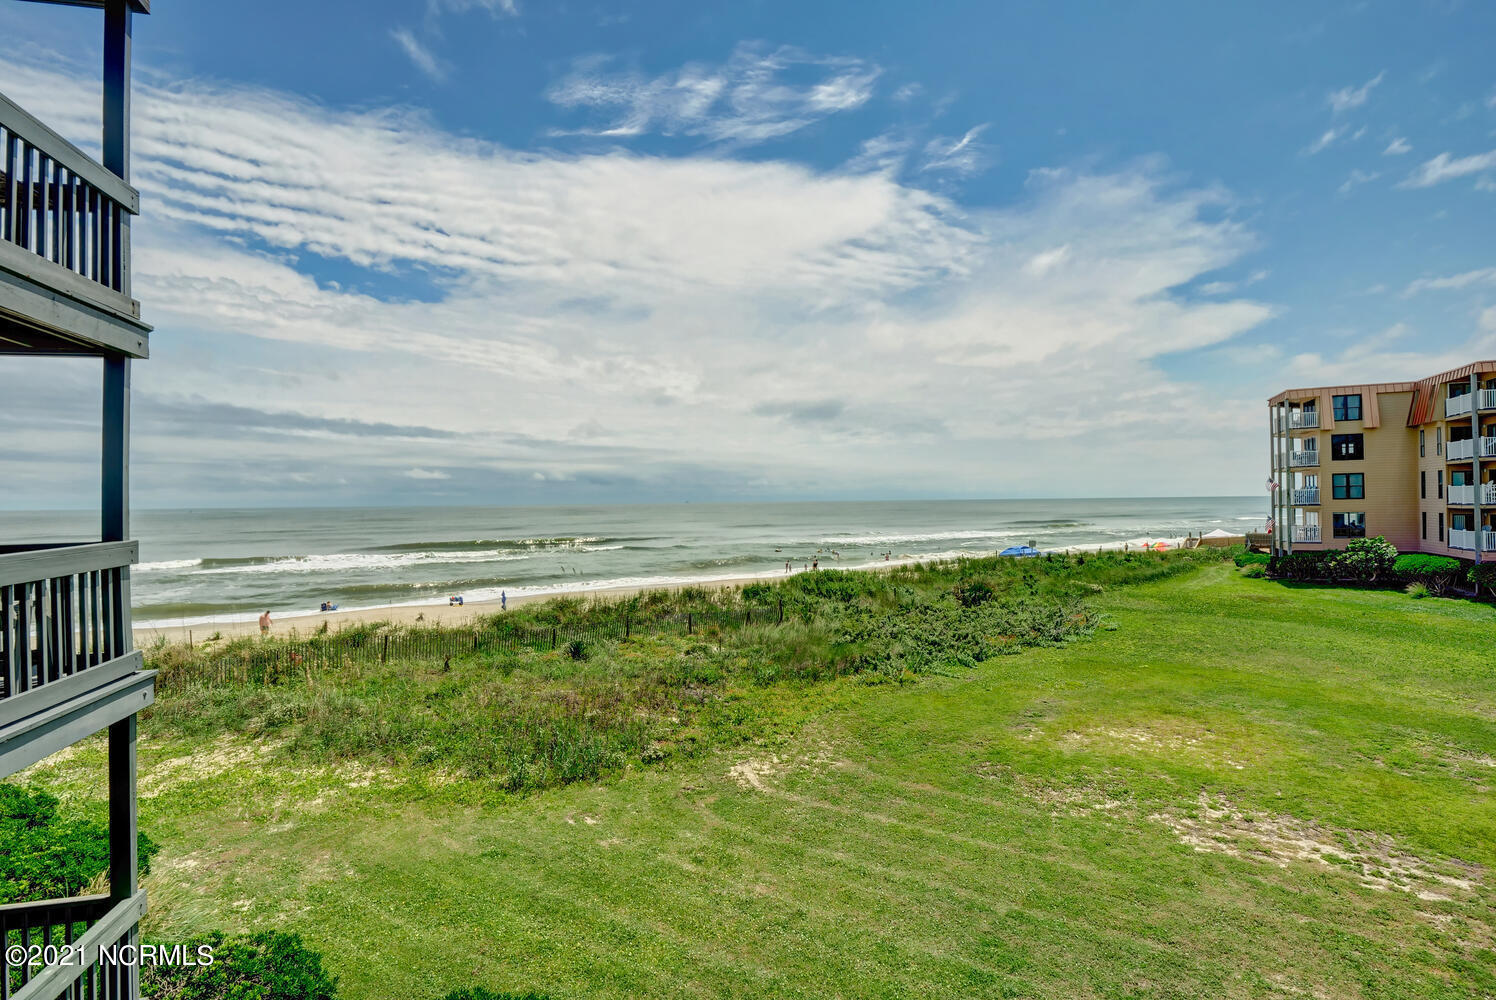 1896 New River Inlet Road, North Topsail Beach, North Carolina 28460, 2 Bedrooms Bedrooms, 4 Rooms Rooms,2 BathroomsBathrooms,Condominium,For sale,New River Inlet,100285243